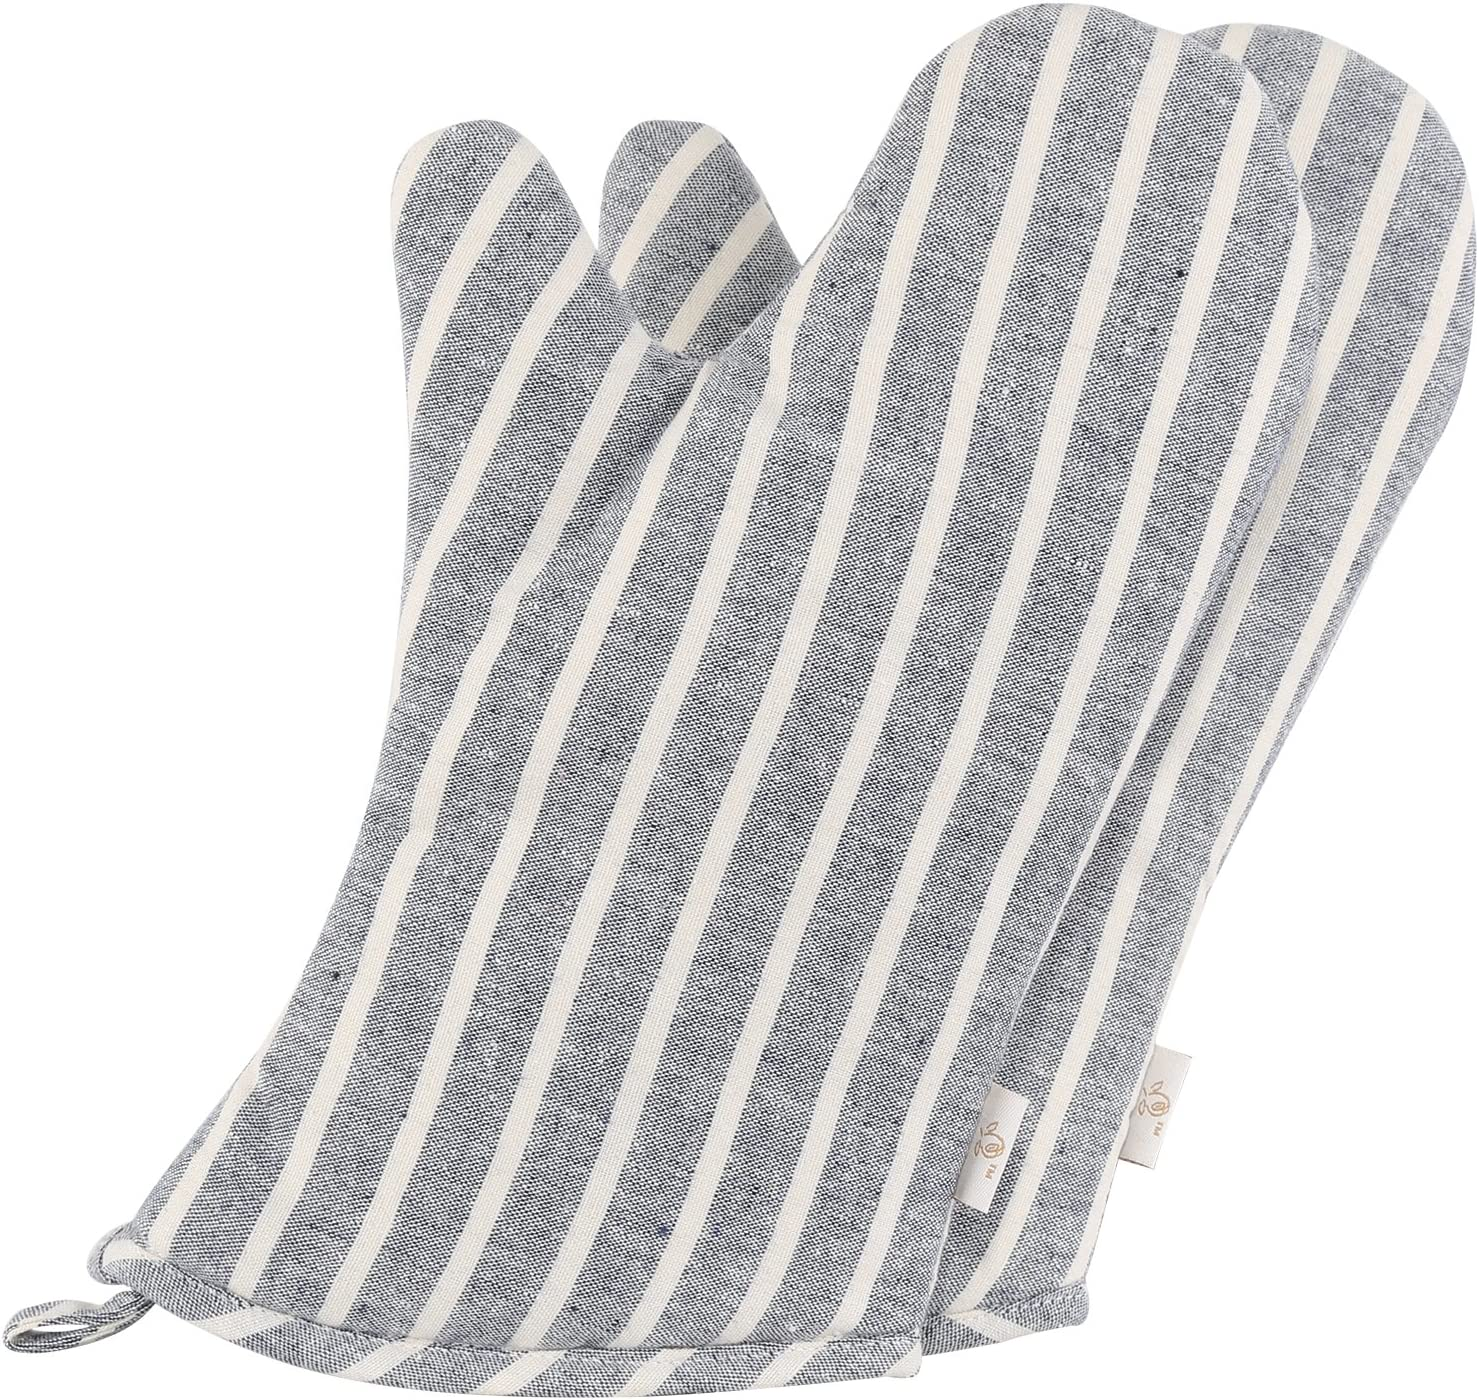 NEOVIVA Denim Quilted Heat Resistant Oven Mitt for Adult Women and Men, Set of 2, Chalk Striped Wild Dove